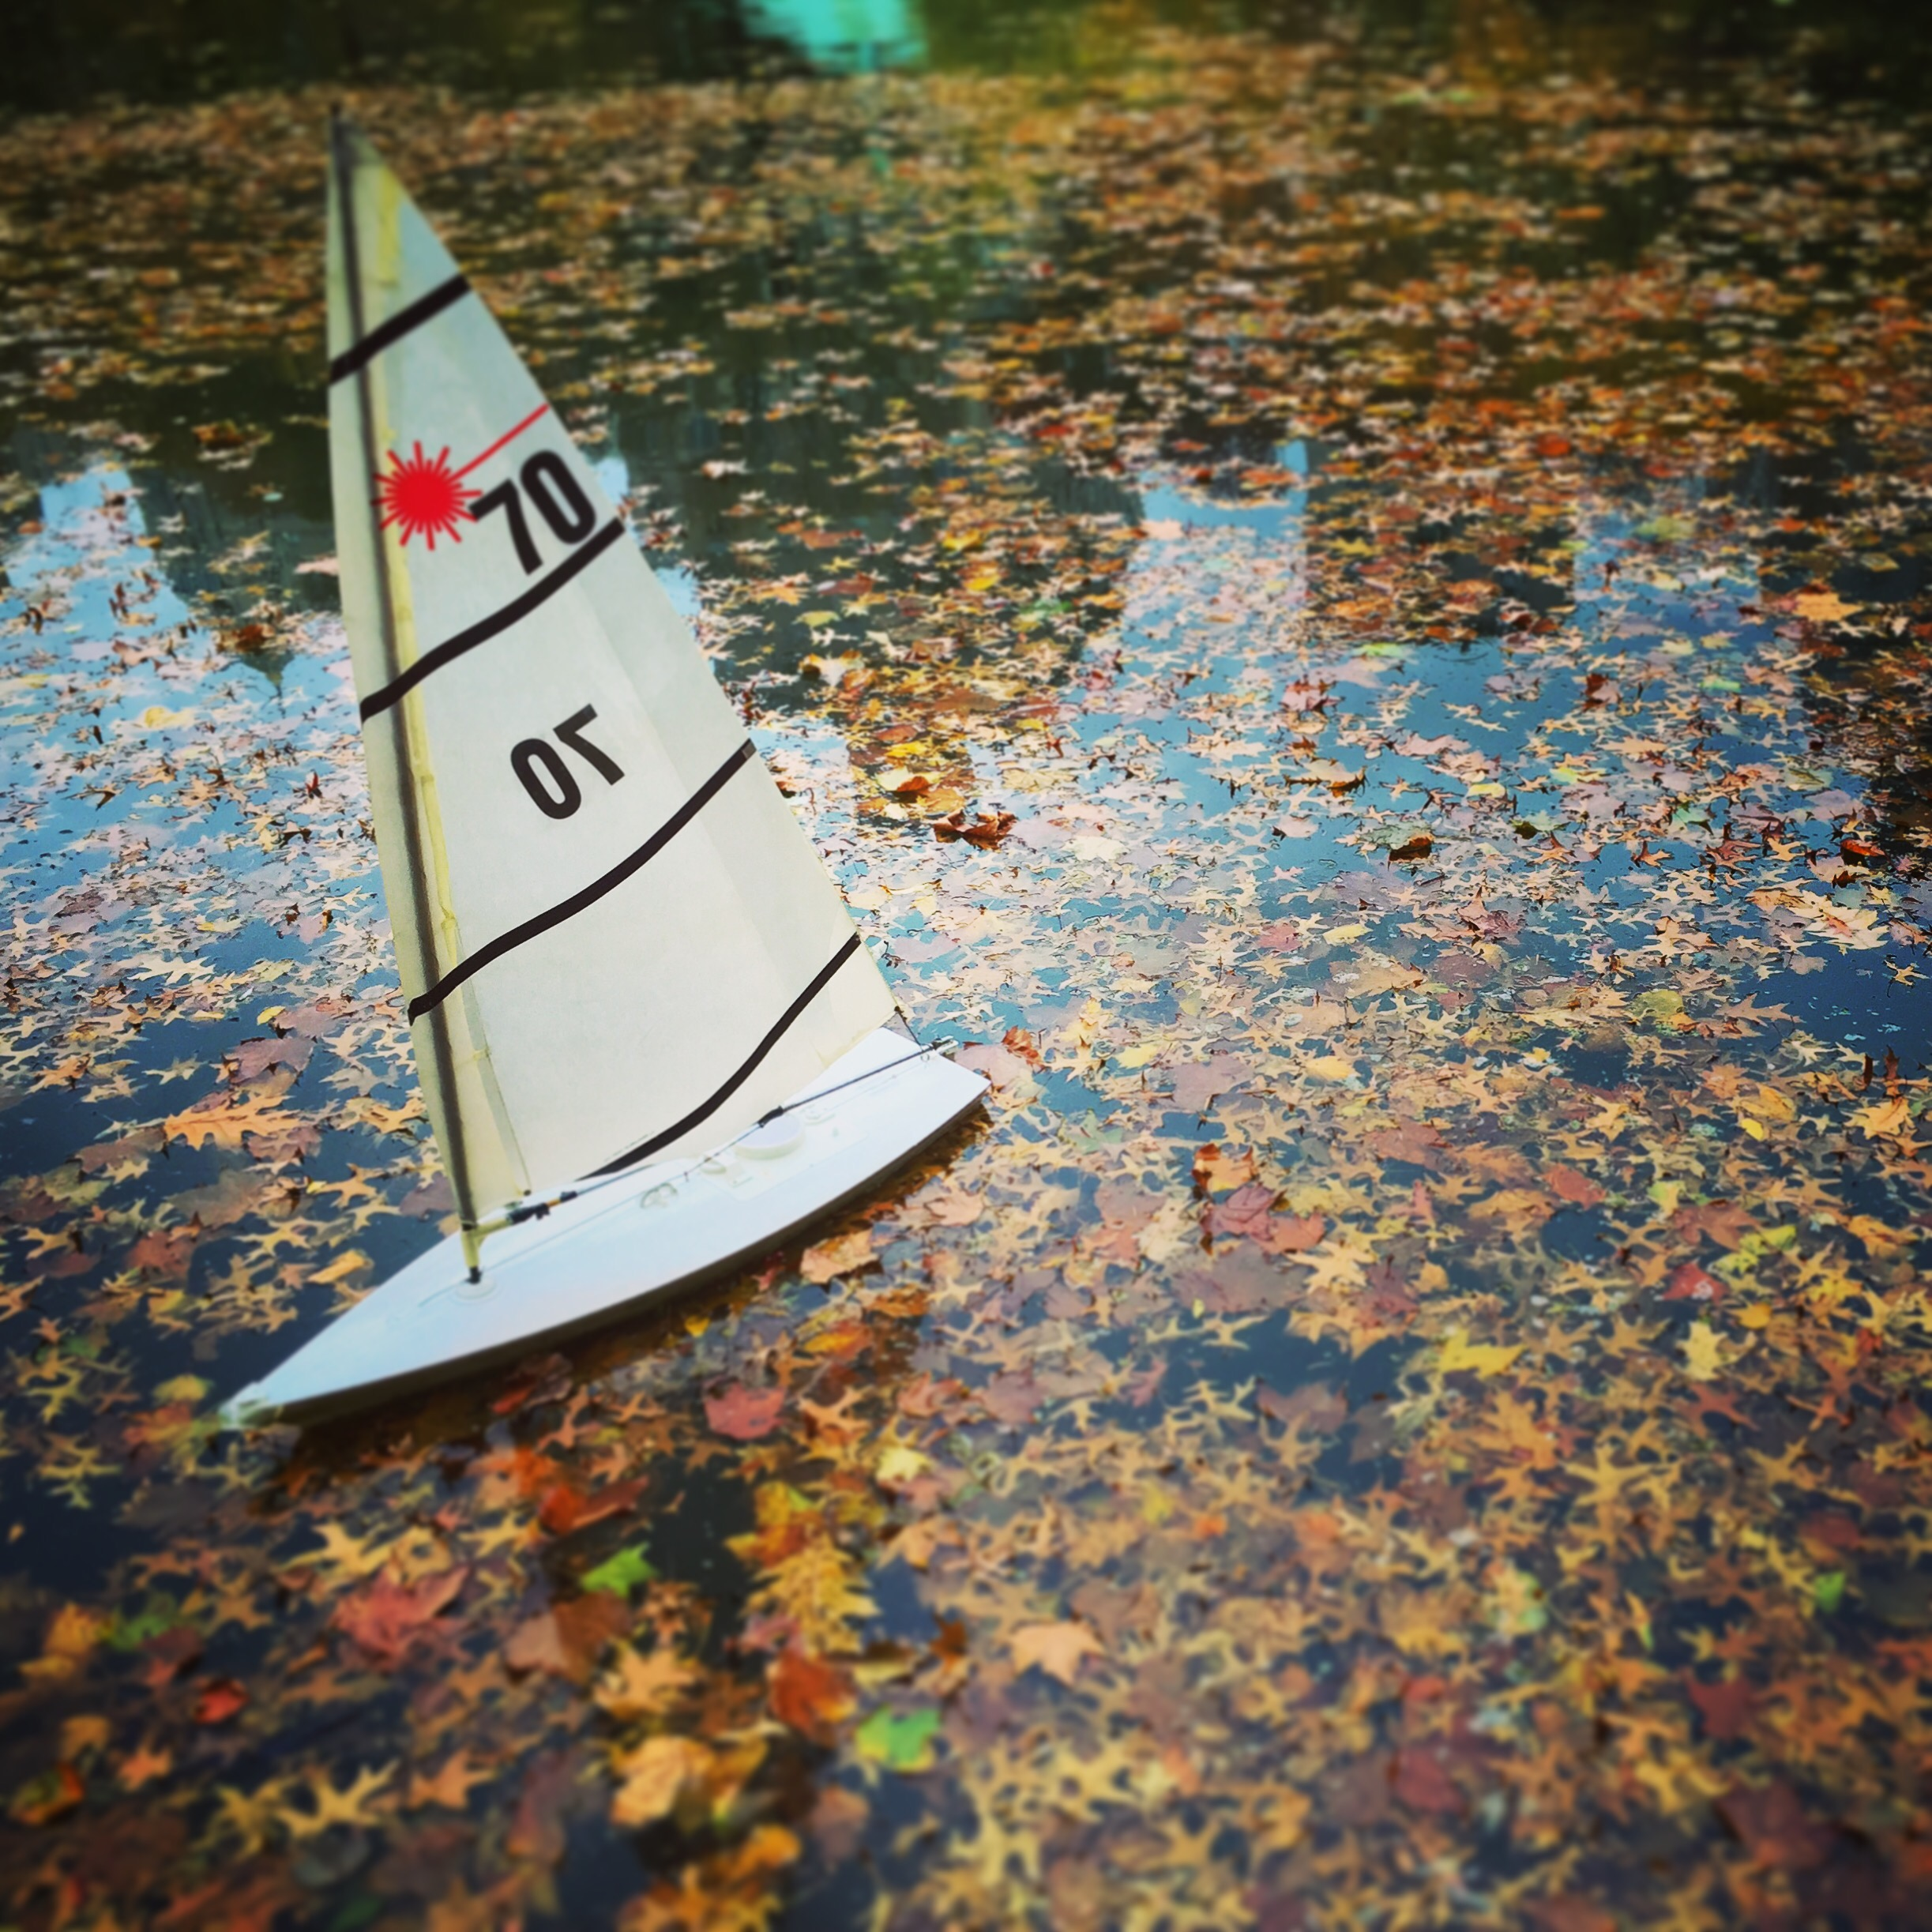 New York Art Director, Jessica Haas captures Central Park's Sailboat Pond reflections